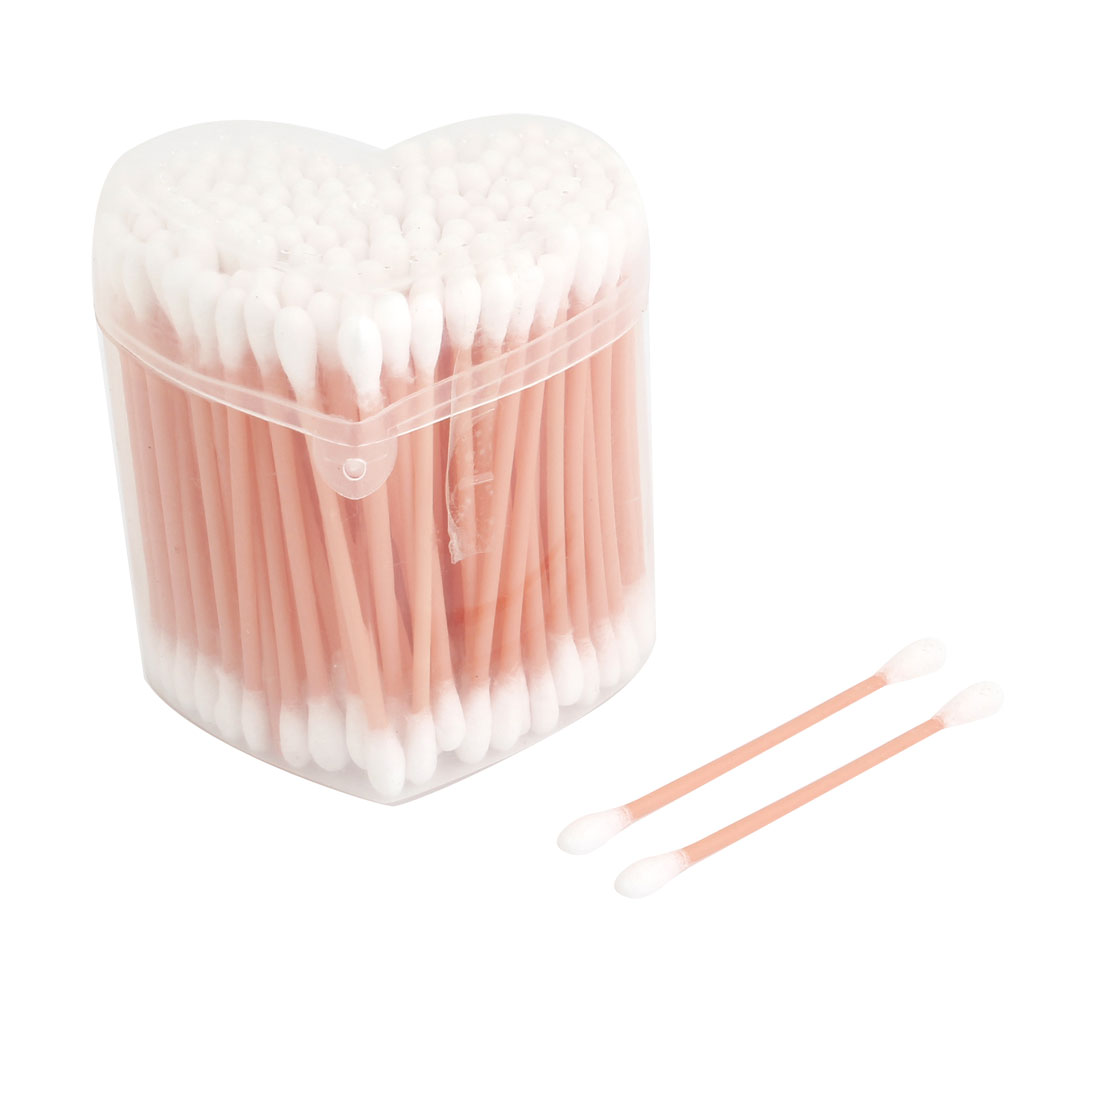 120 Pcs Disposable Double Head Light Pink Plastic Tube Cotton Swab Buds